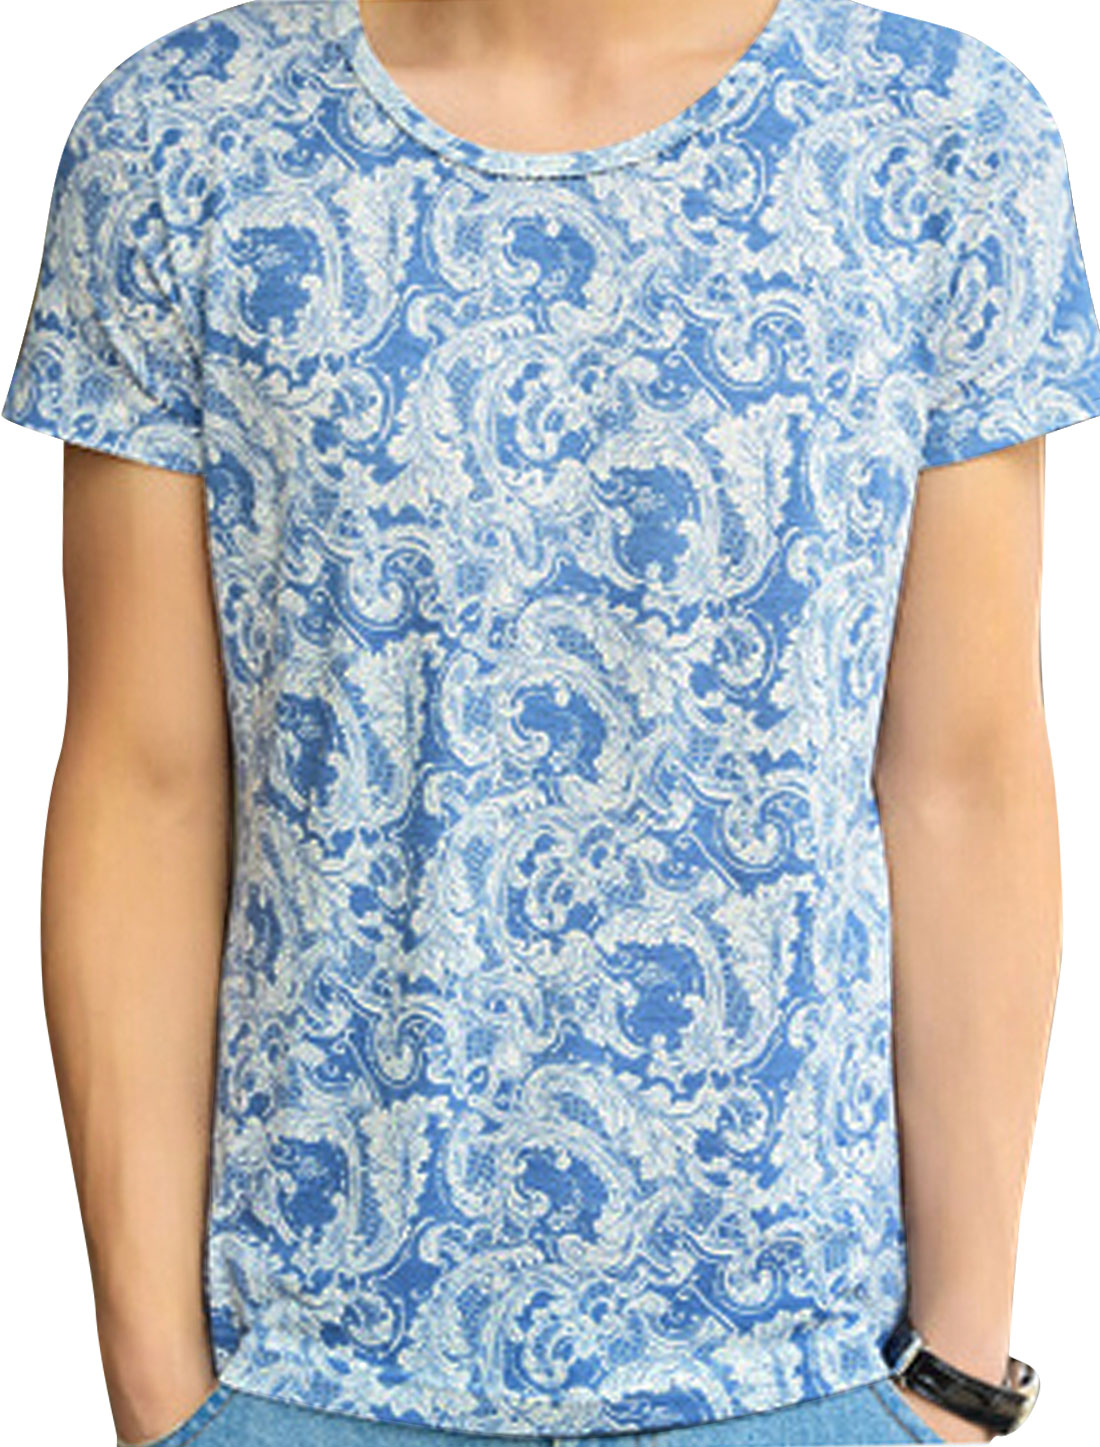 Round Neck Short Sleeve Novelty Prints Blue M Tee Shirt for Man